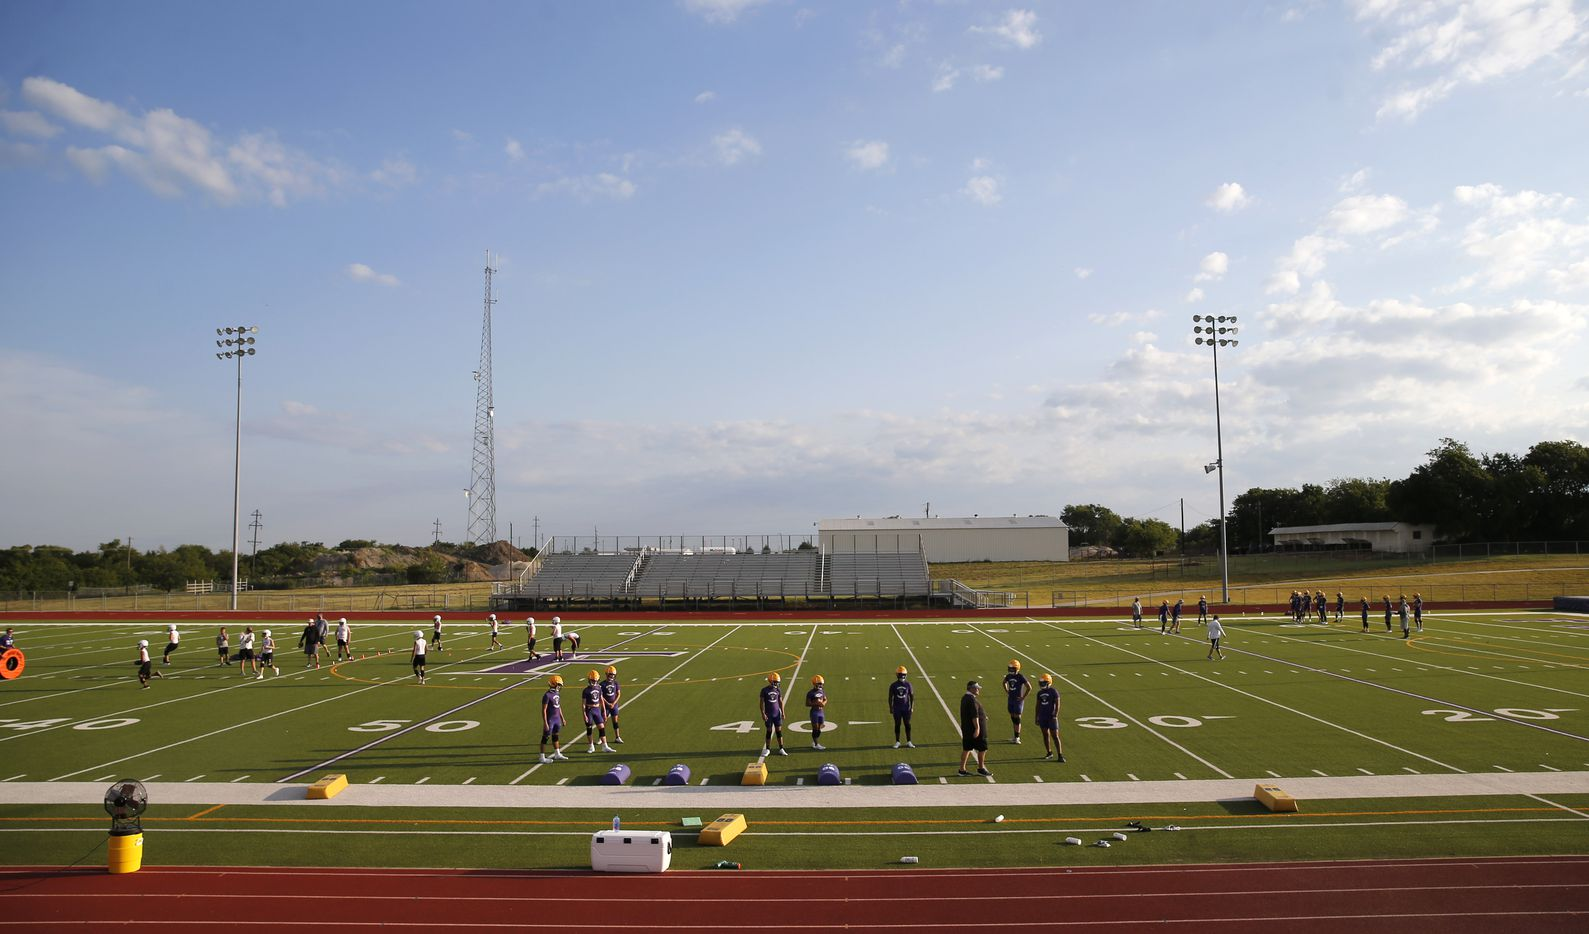 Farmersville High School football team during the first day of high school football practice for 4A's Farmersville High School in Farmersville, Texas on Monday, August 3, 2020. (Vernon Bryant/The Dallas Morning News)